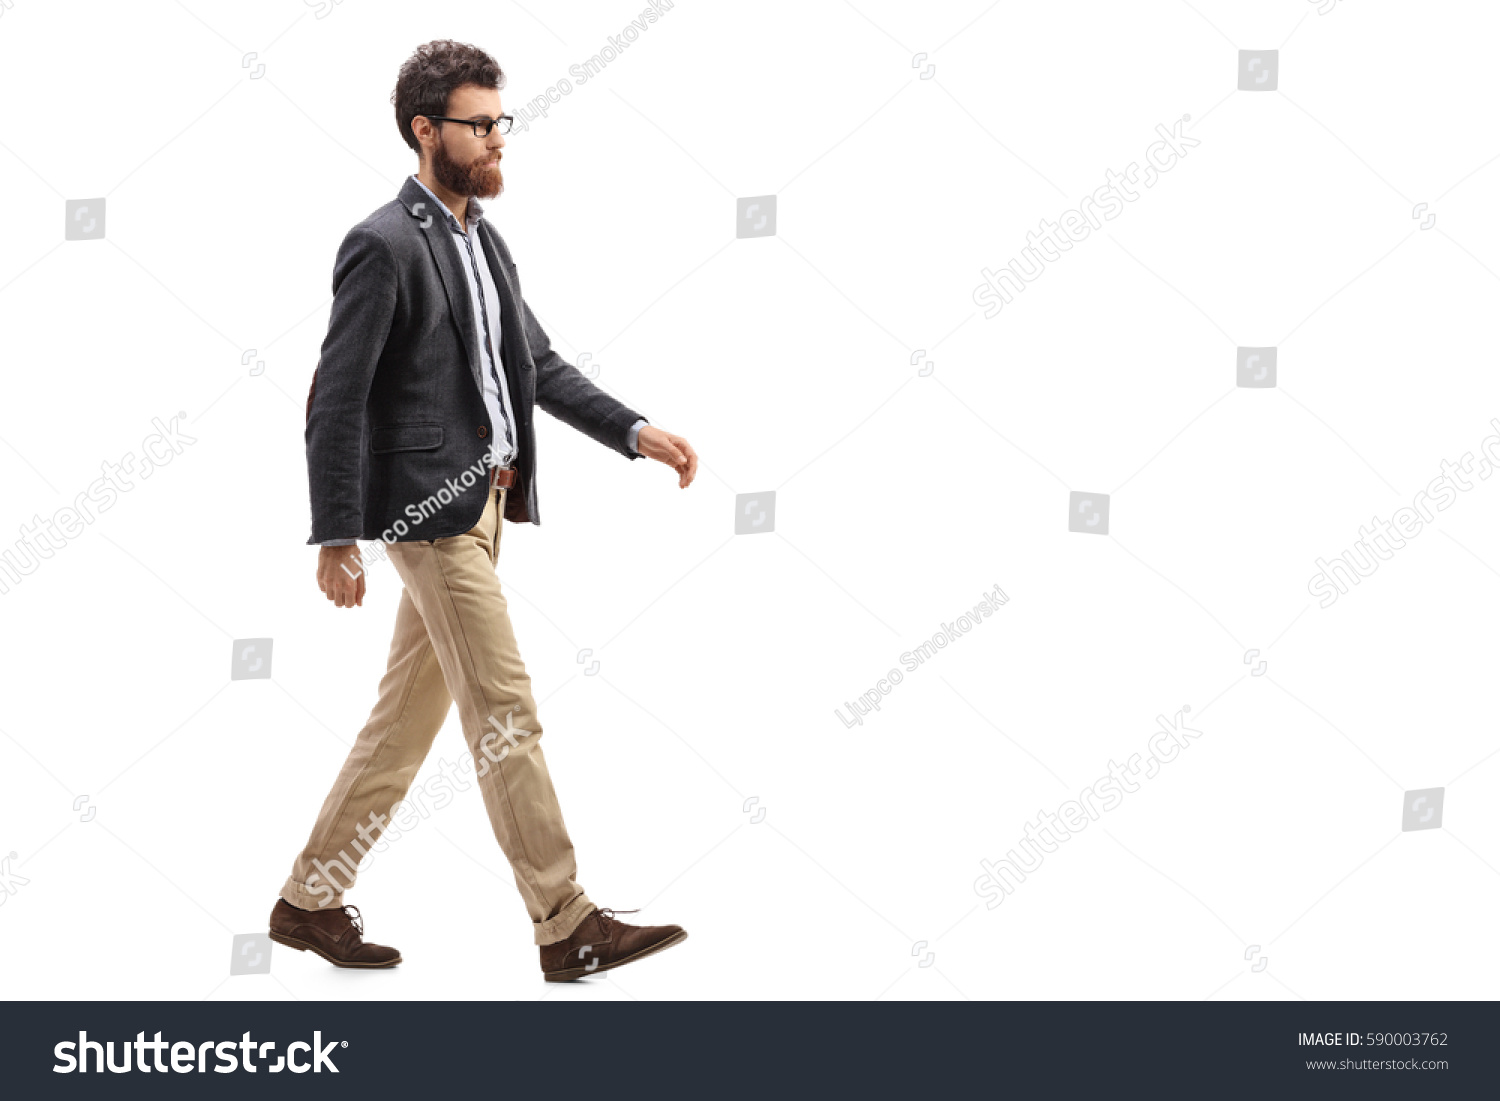 Full length profile shot of a young bearded man walking isolated on white background